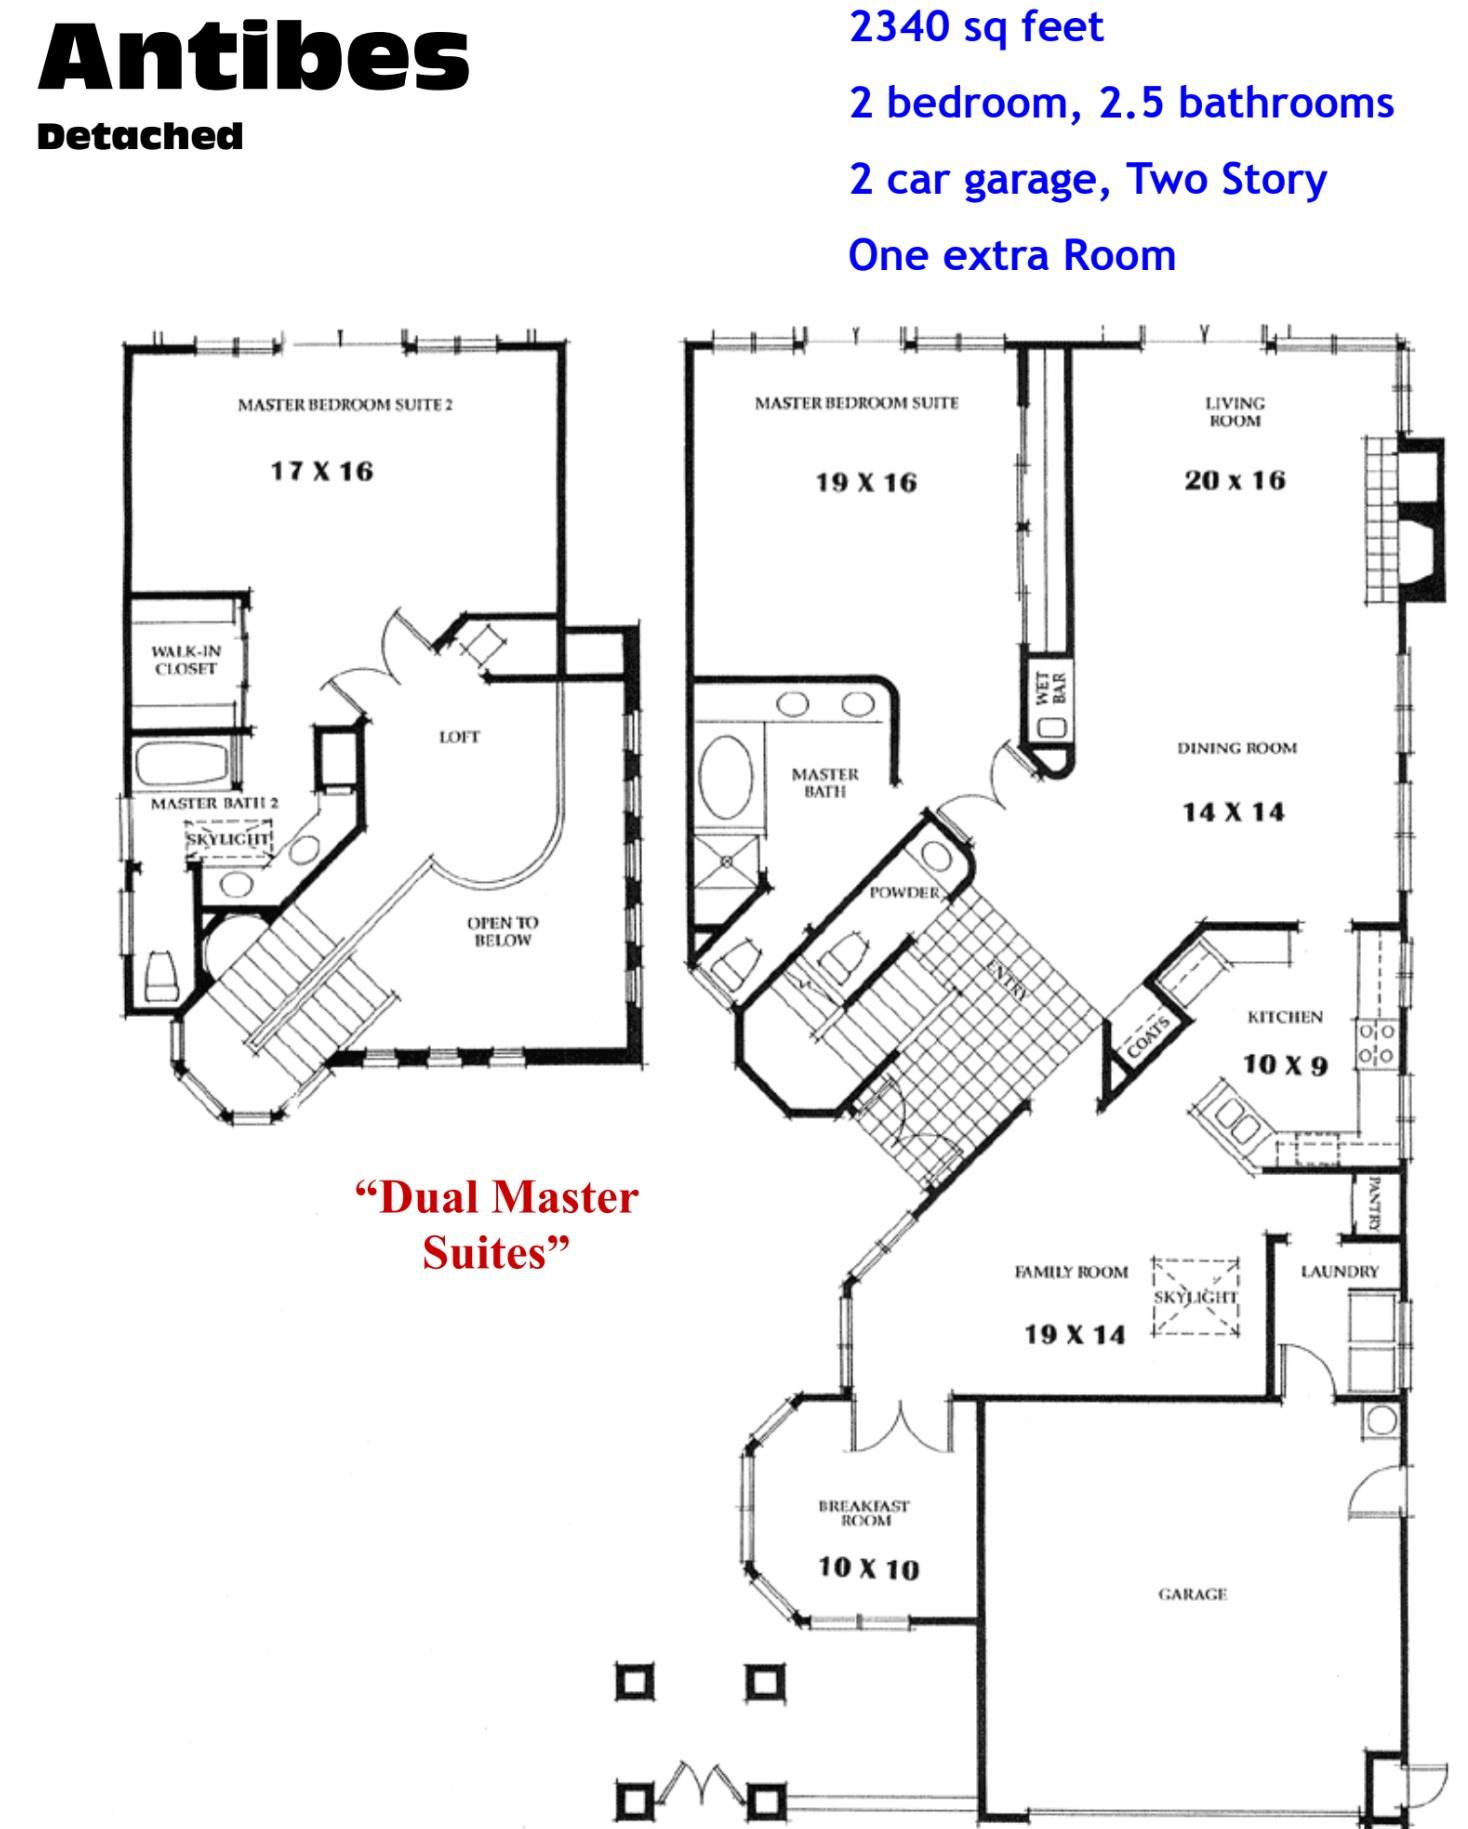 Ocean Hills Country Club Antibes Floor Plans Ocean Hills Model Homes